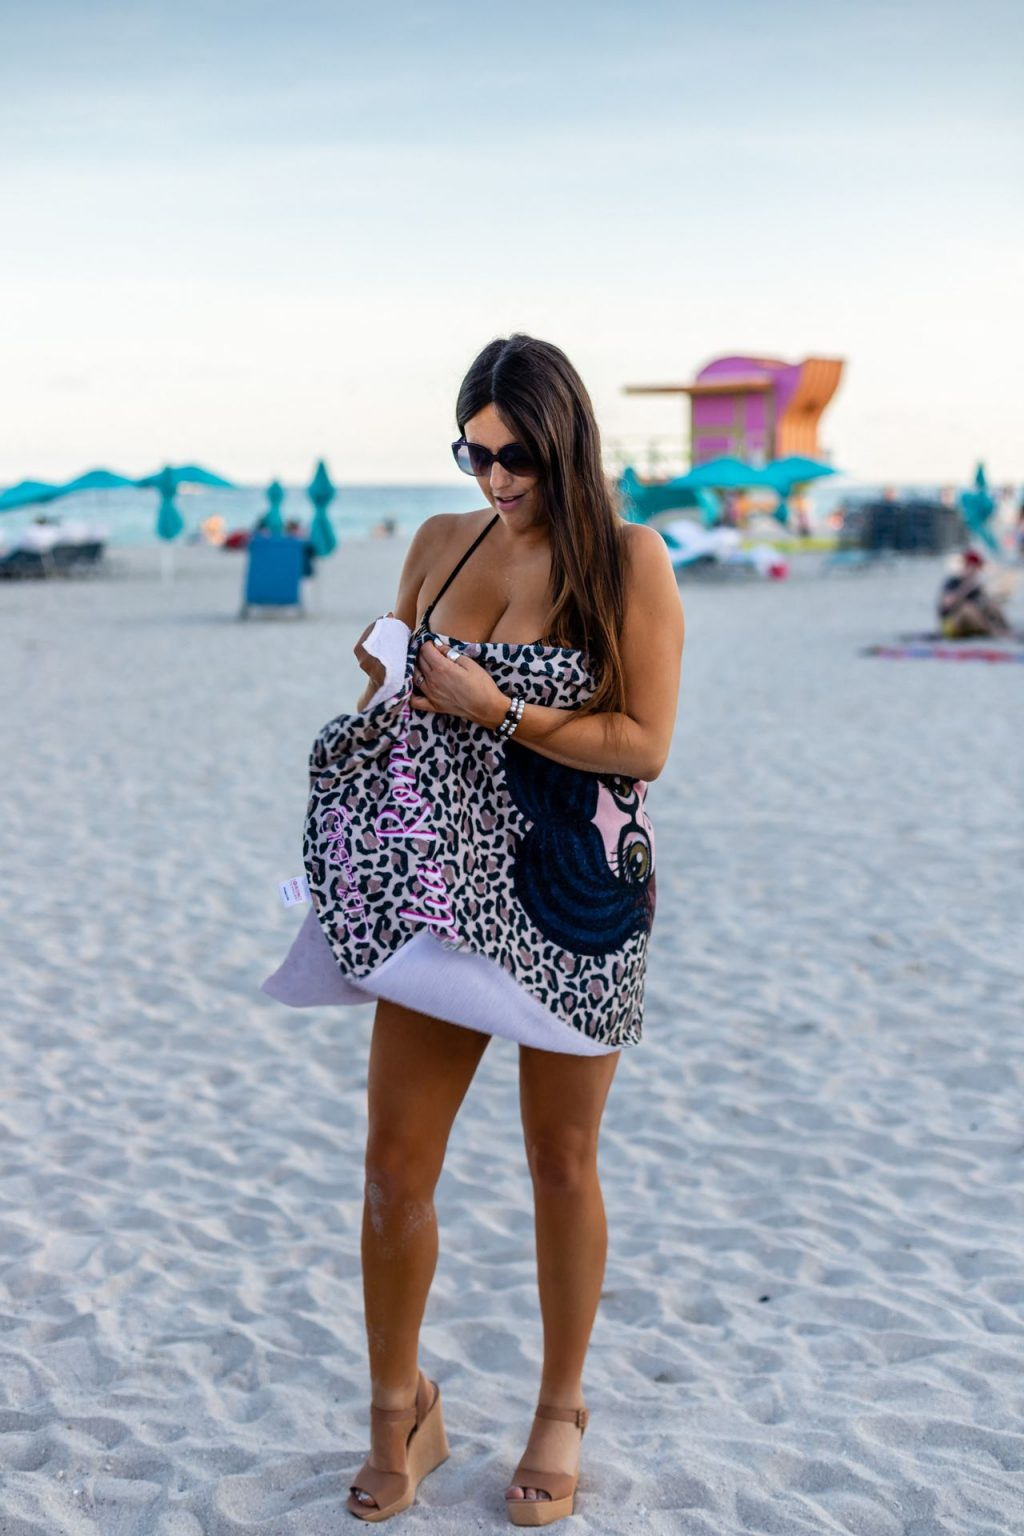 Claudia Romani is Pictured Relaxing on South Beach (29 Photos)